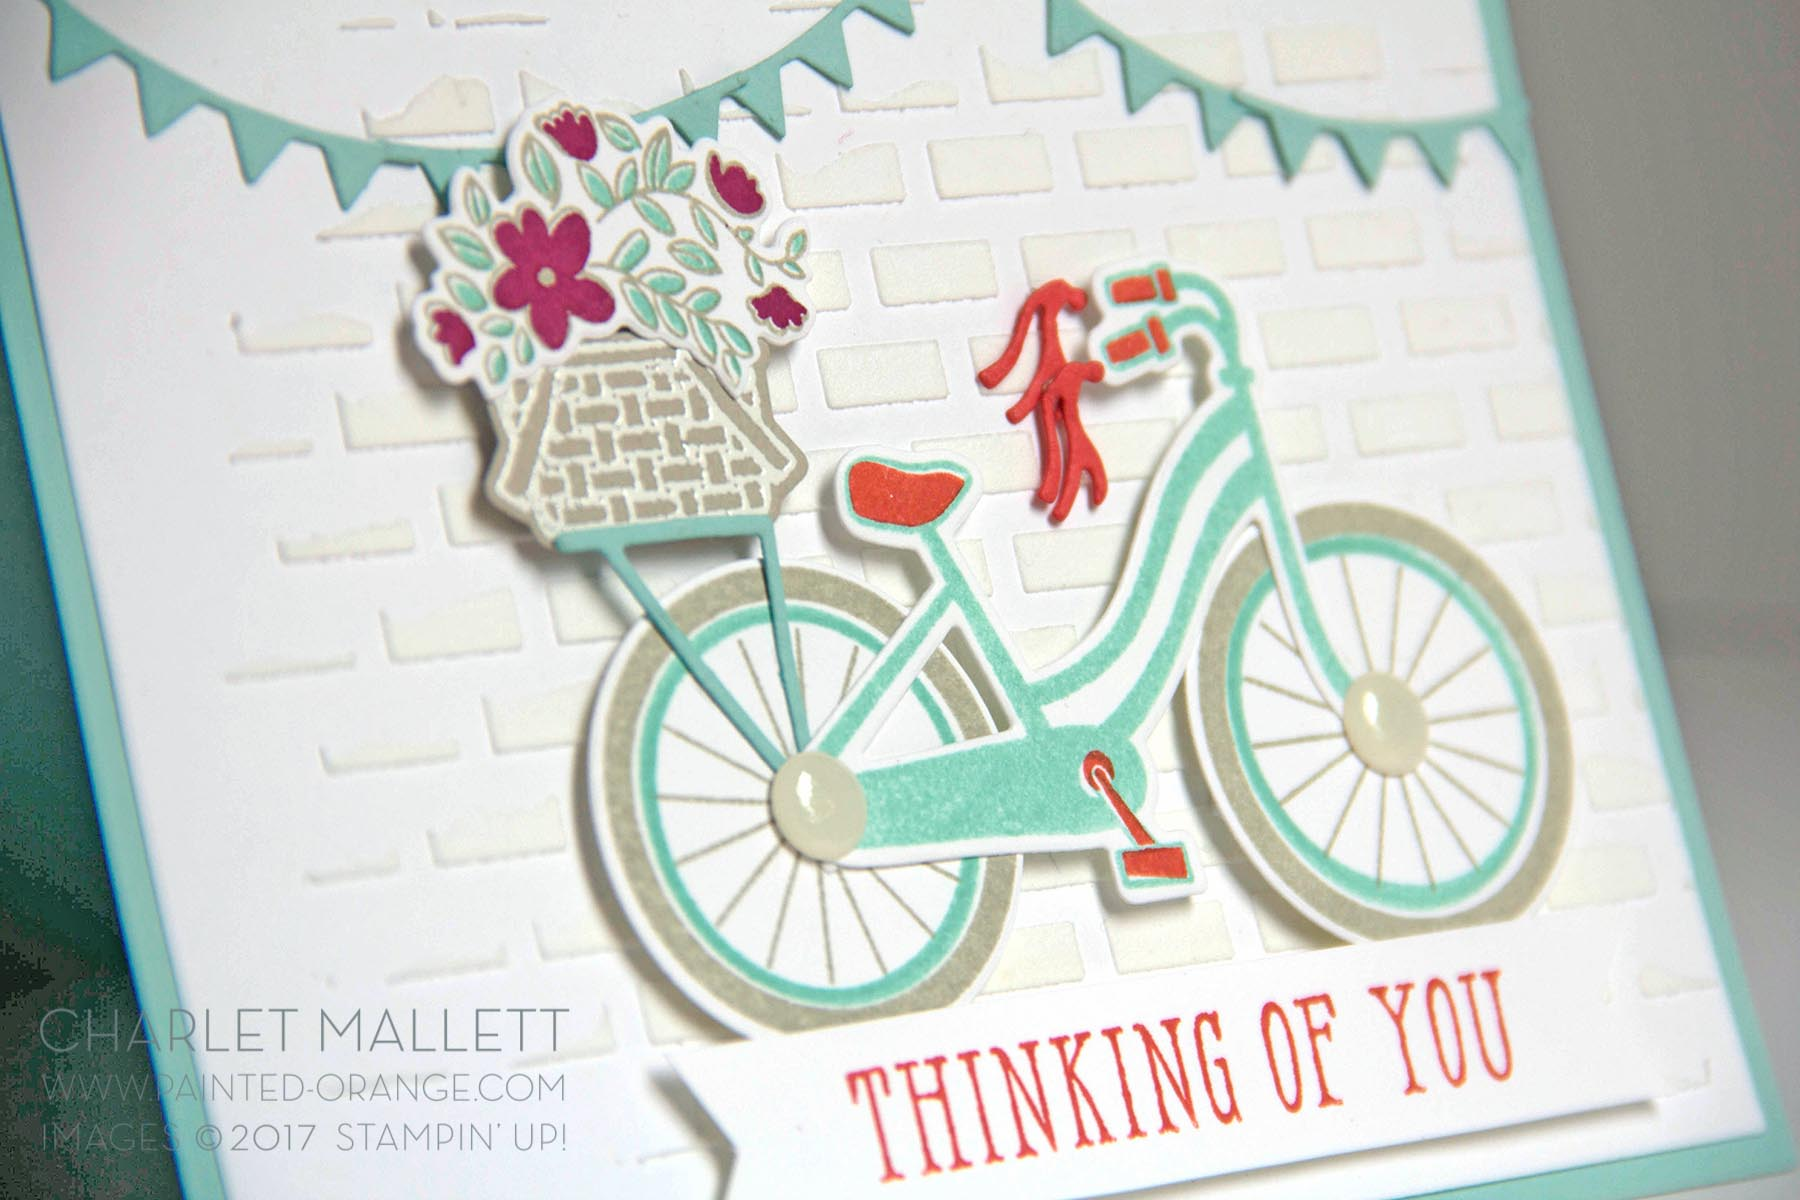 Bike Ride Thinking of You card - Charlet Mallett, Stampin' Up!